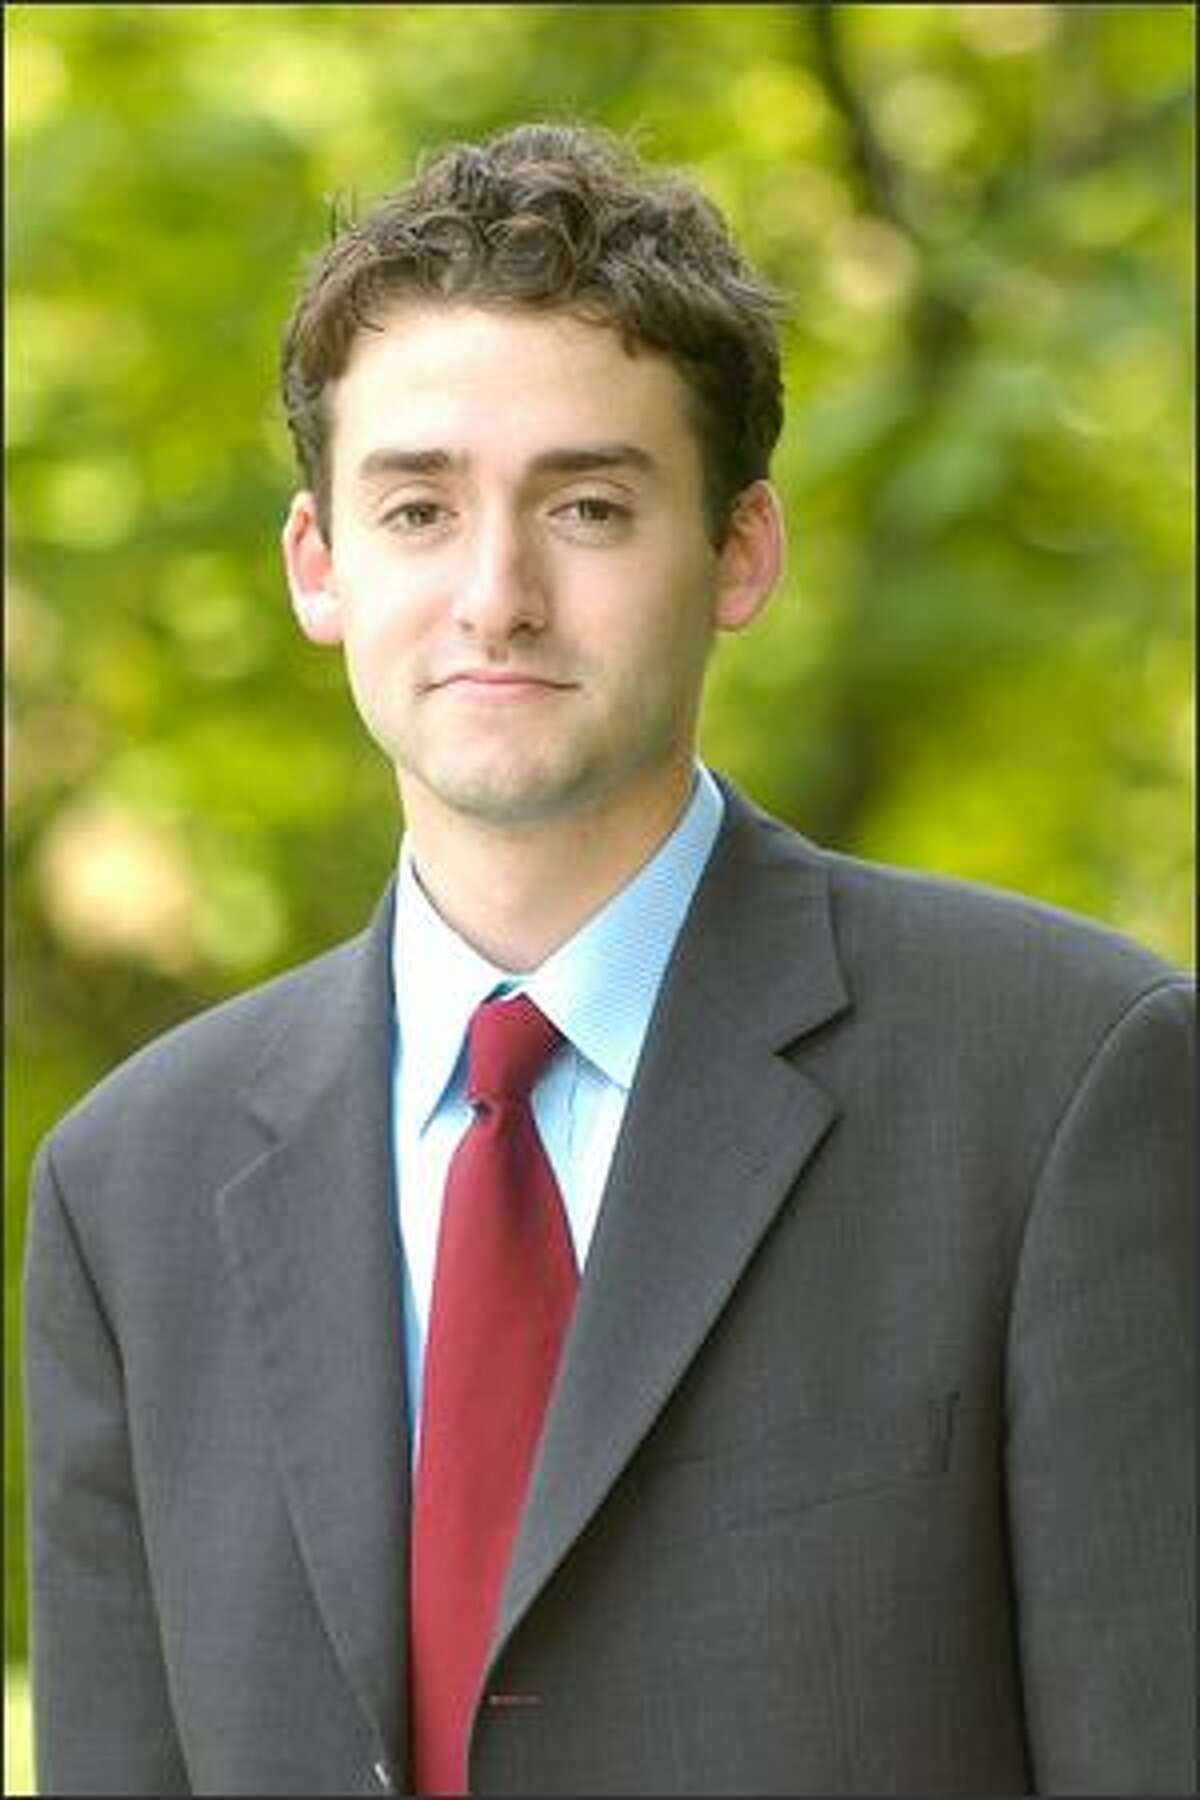 Andy Litinsky, 23, recent Harvard grad, Boca Raton, Fla.: At the age of 13, Andy co-founded a concert package company that focused on both corporate and individual clients. The youngest of four boys, he learned to use his speaking skills to defend himself at an early age and won the U.S. National Debate Championship in Commentary Speaking in 1999. At Harvard, he was a founding member of an organization dedicated to fighting infectious diseases in developing countries. A competitive tennis player, Andy is looking forward to continued success both in and out of the Boardroom.